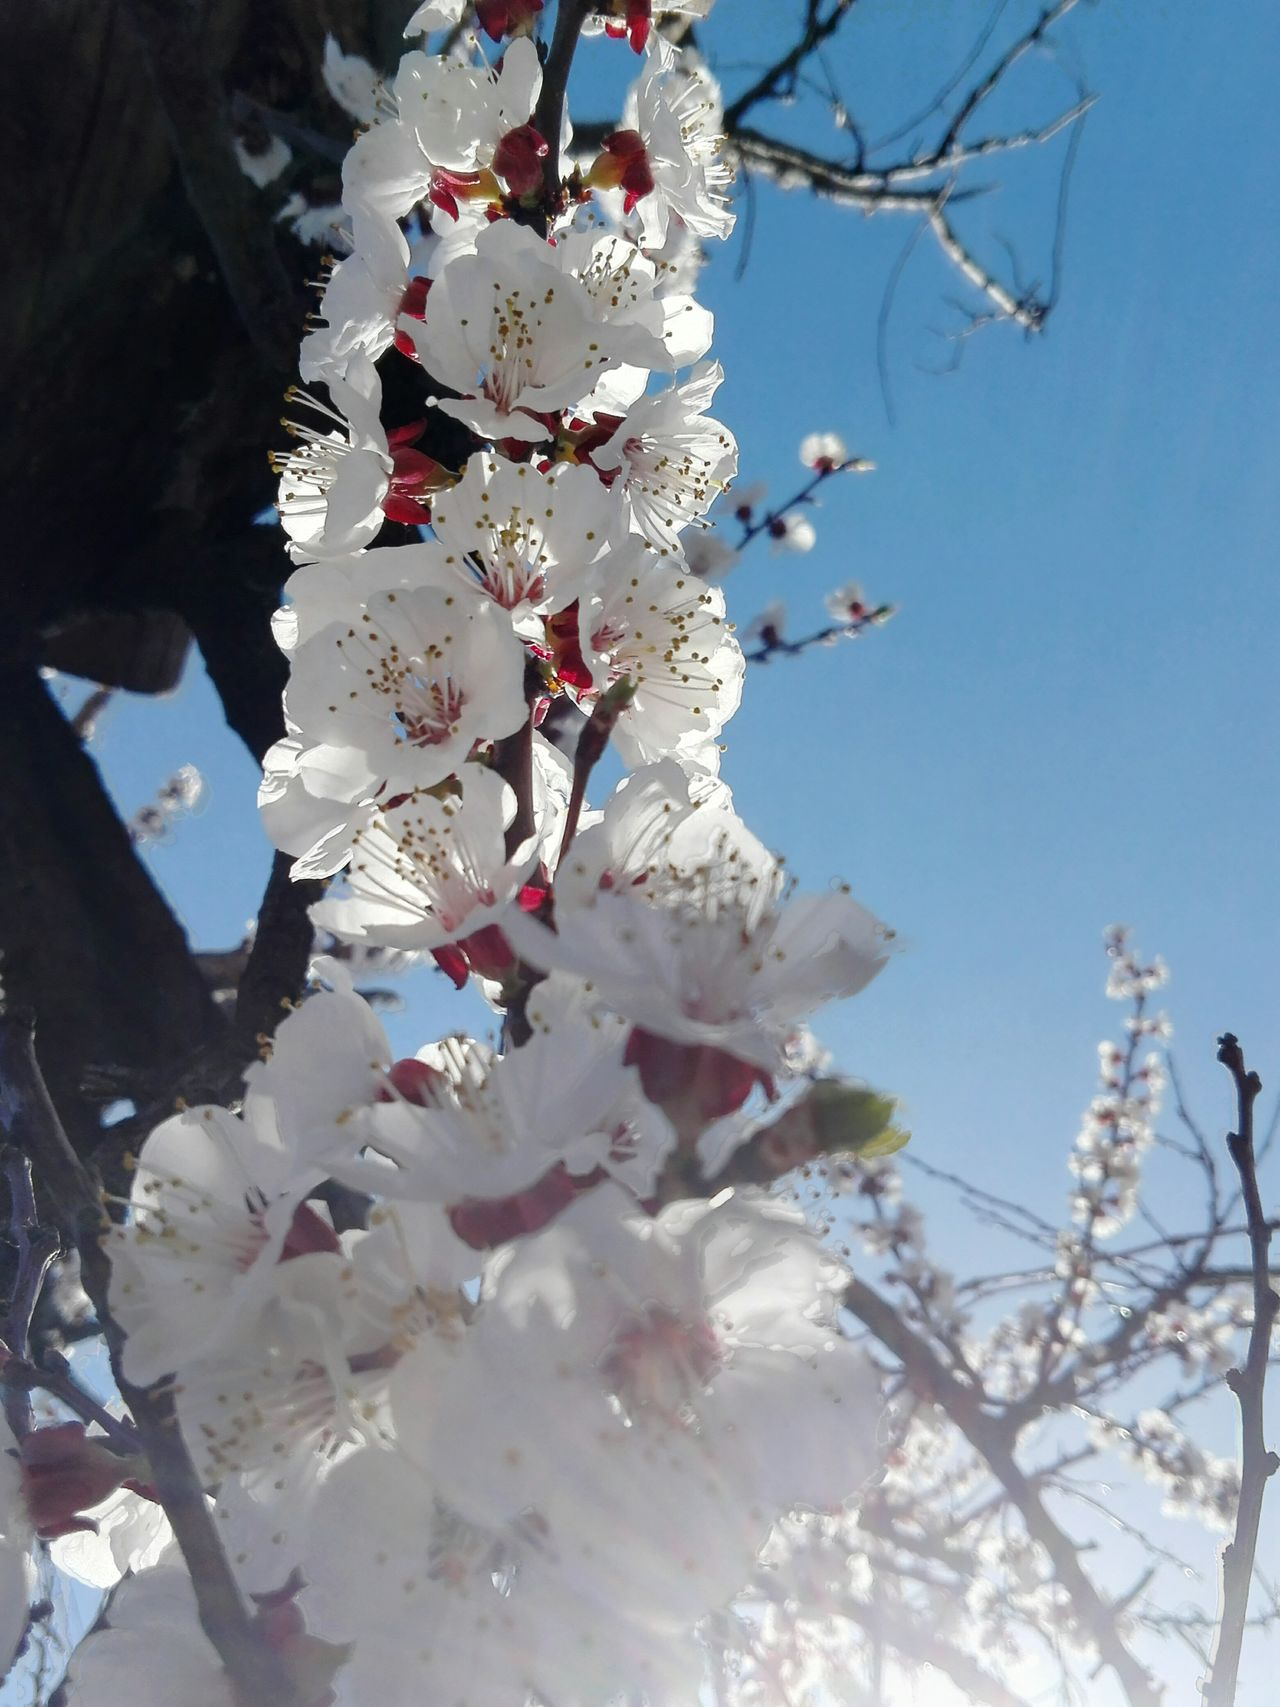 Tree Sunlight Springtime Nature Blossom Low Angle View Branch Flower No People Sky Outdoors Close-up Flower Head Apricot Tree Blossomed Apricot Blossoms Edited By @wolfzuachis On Market Wolfzuachiv Huaweiphotography Eyeem Market Showcase: 2017 @WOLFZUACHiV Veronica Ionita Showcase: March Wolfzuachis EyeEmNewHere